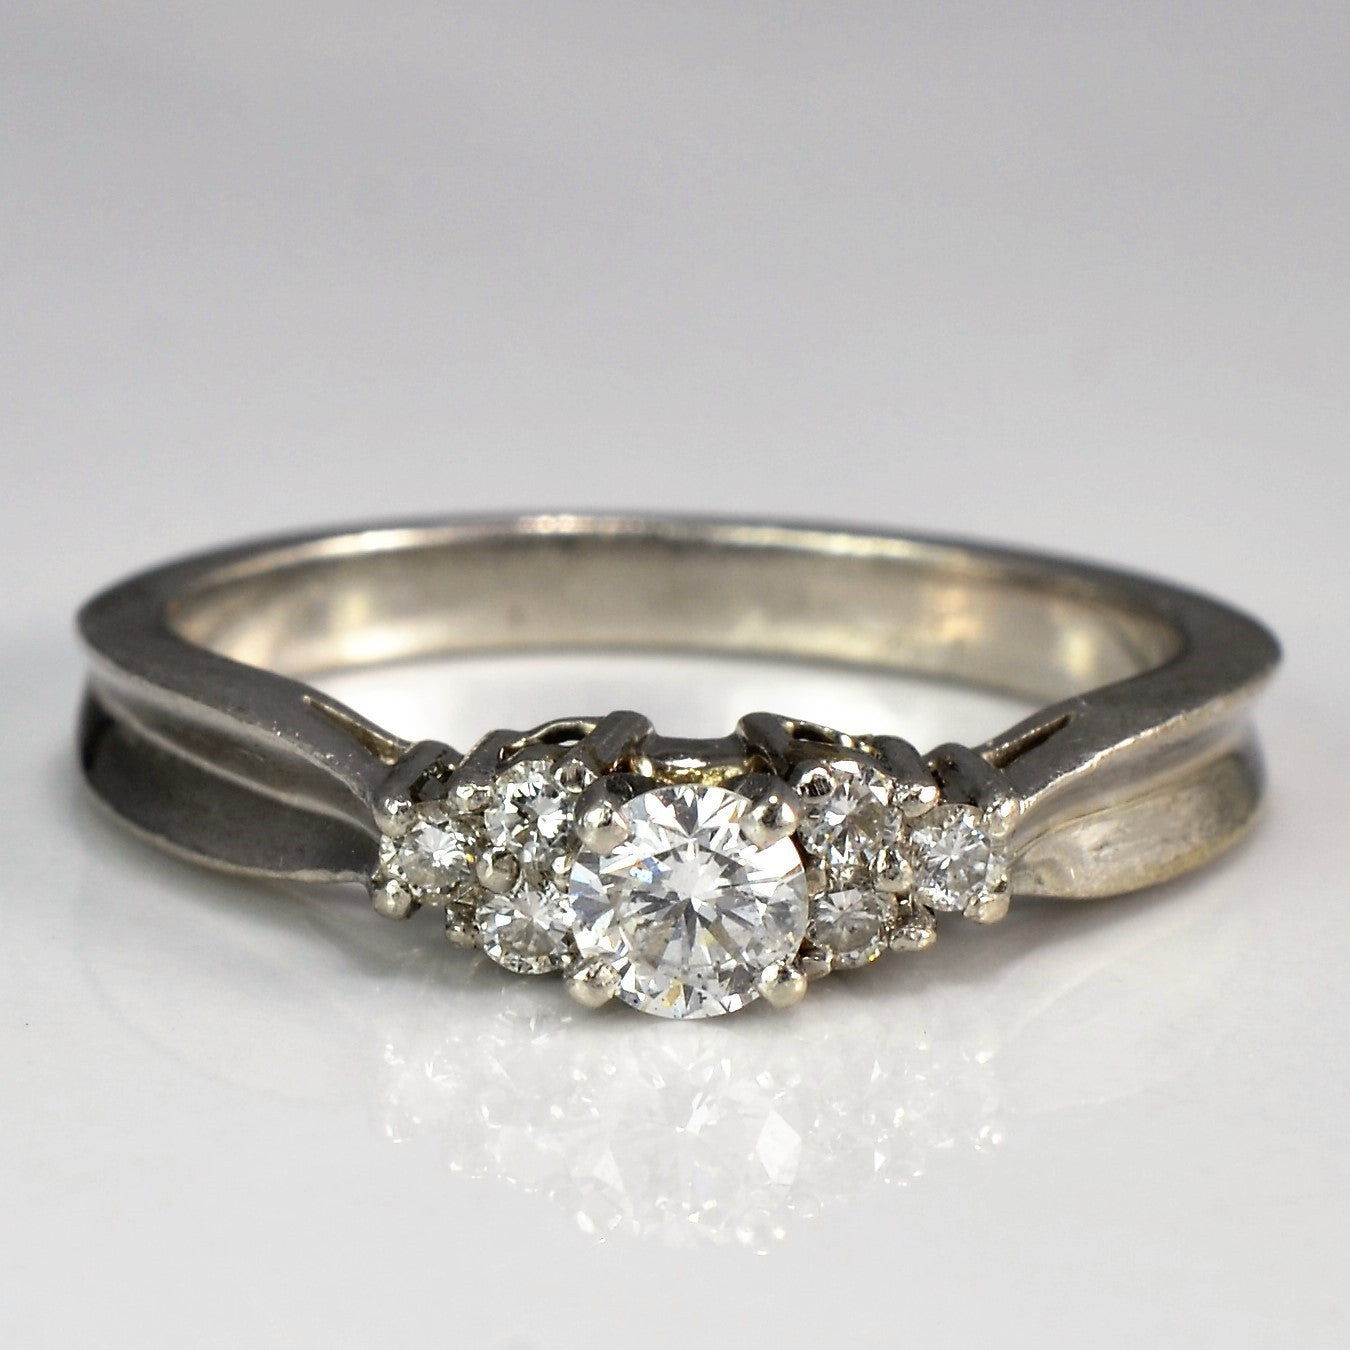 Concave Tapered Platinum Engagement Ring | 0.33 ctw, SZ 6.75 |